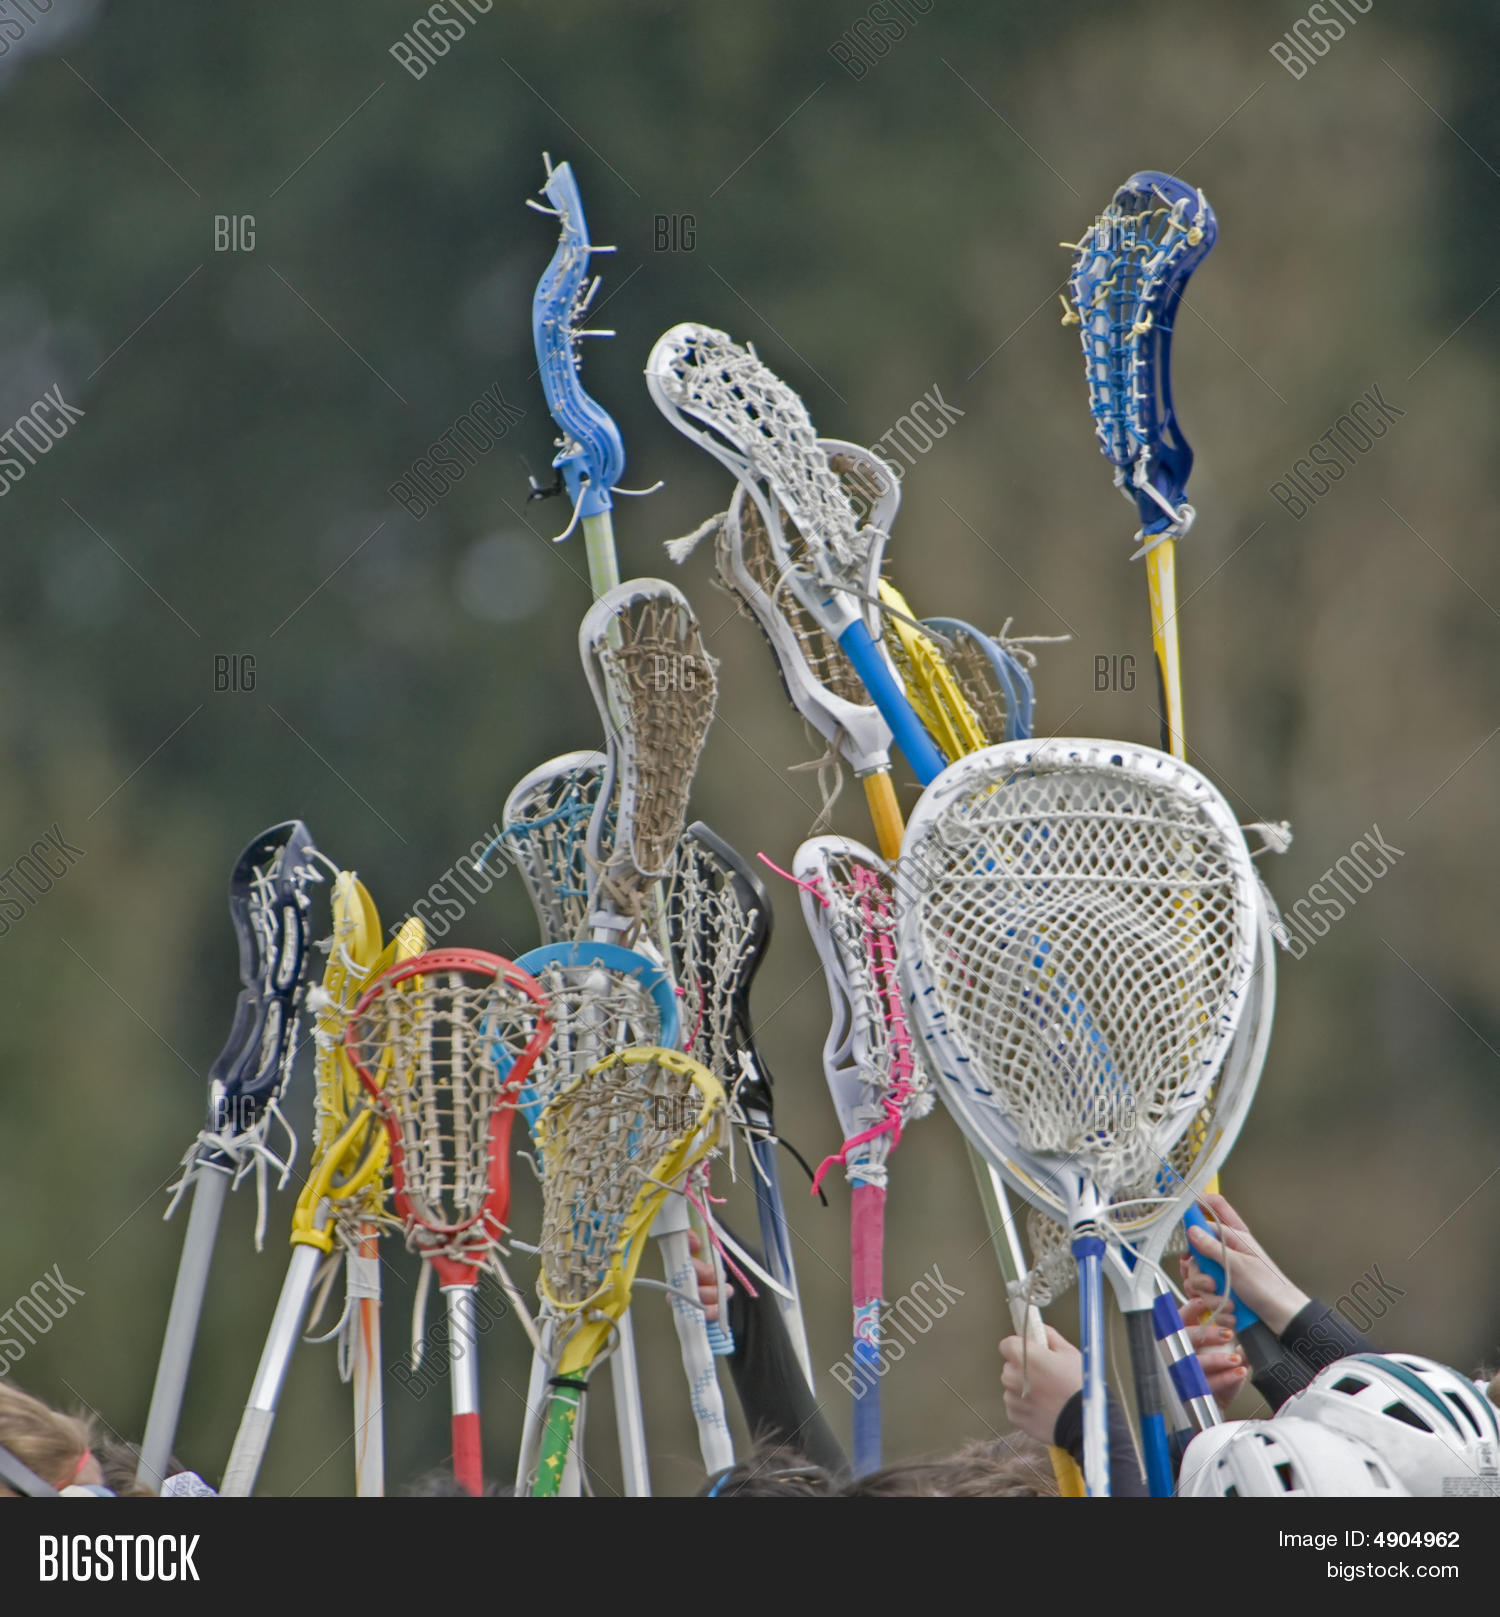 Girls Lacrosse Backgrounds Imgkid Com The Image HD Wallpapers Download Free Images Wallpaper [1000image.com]